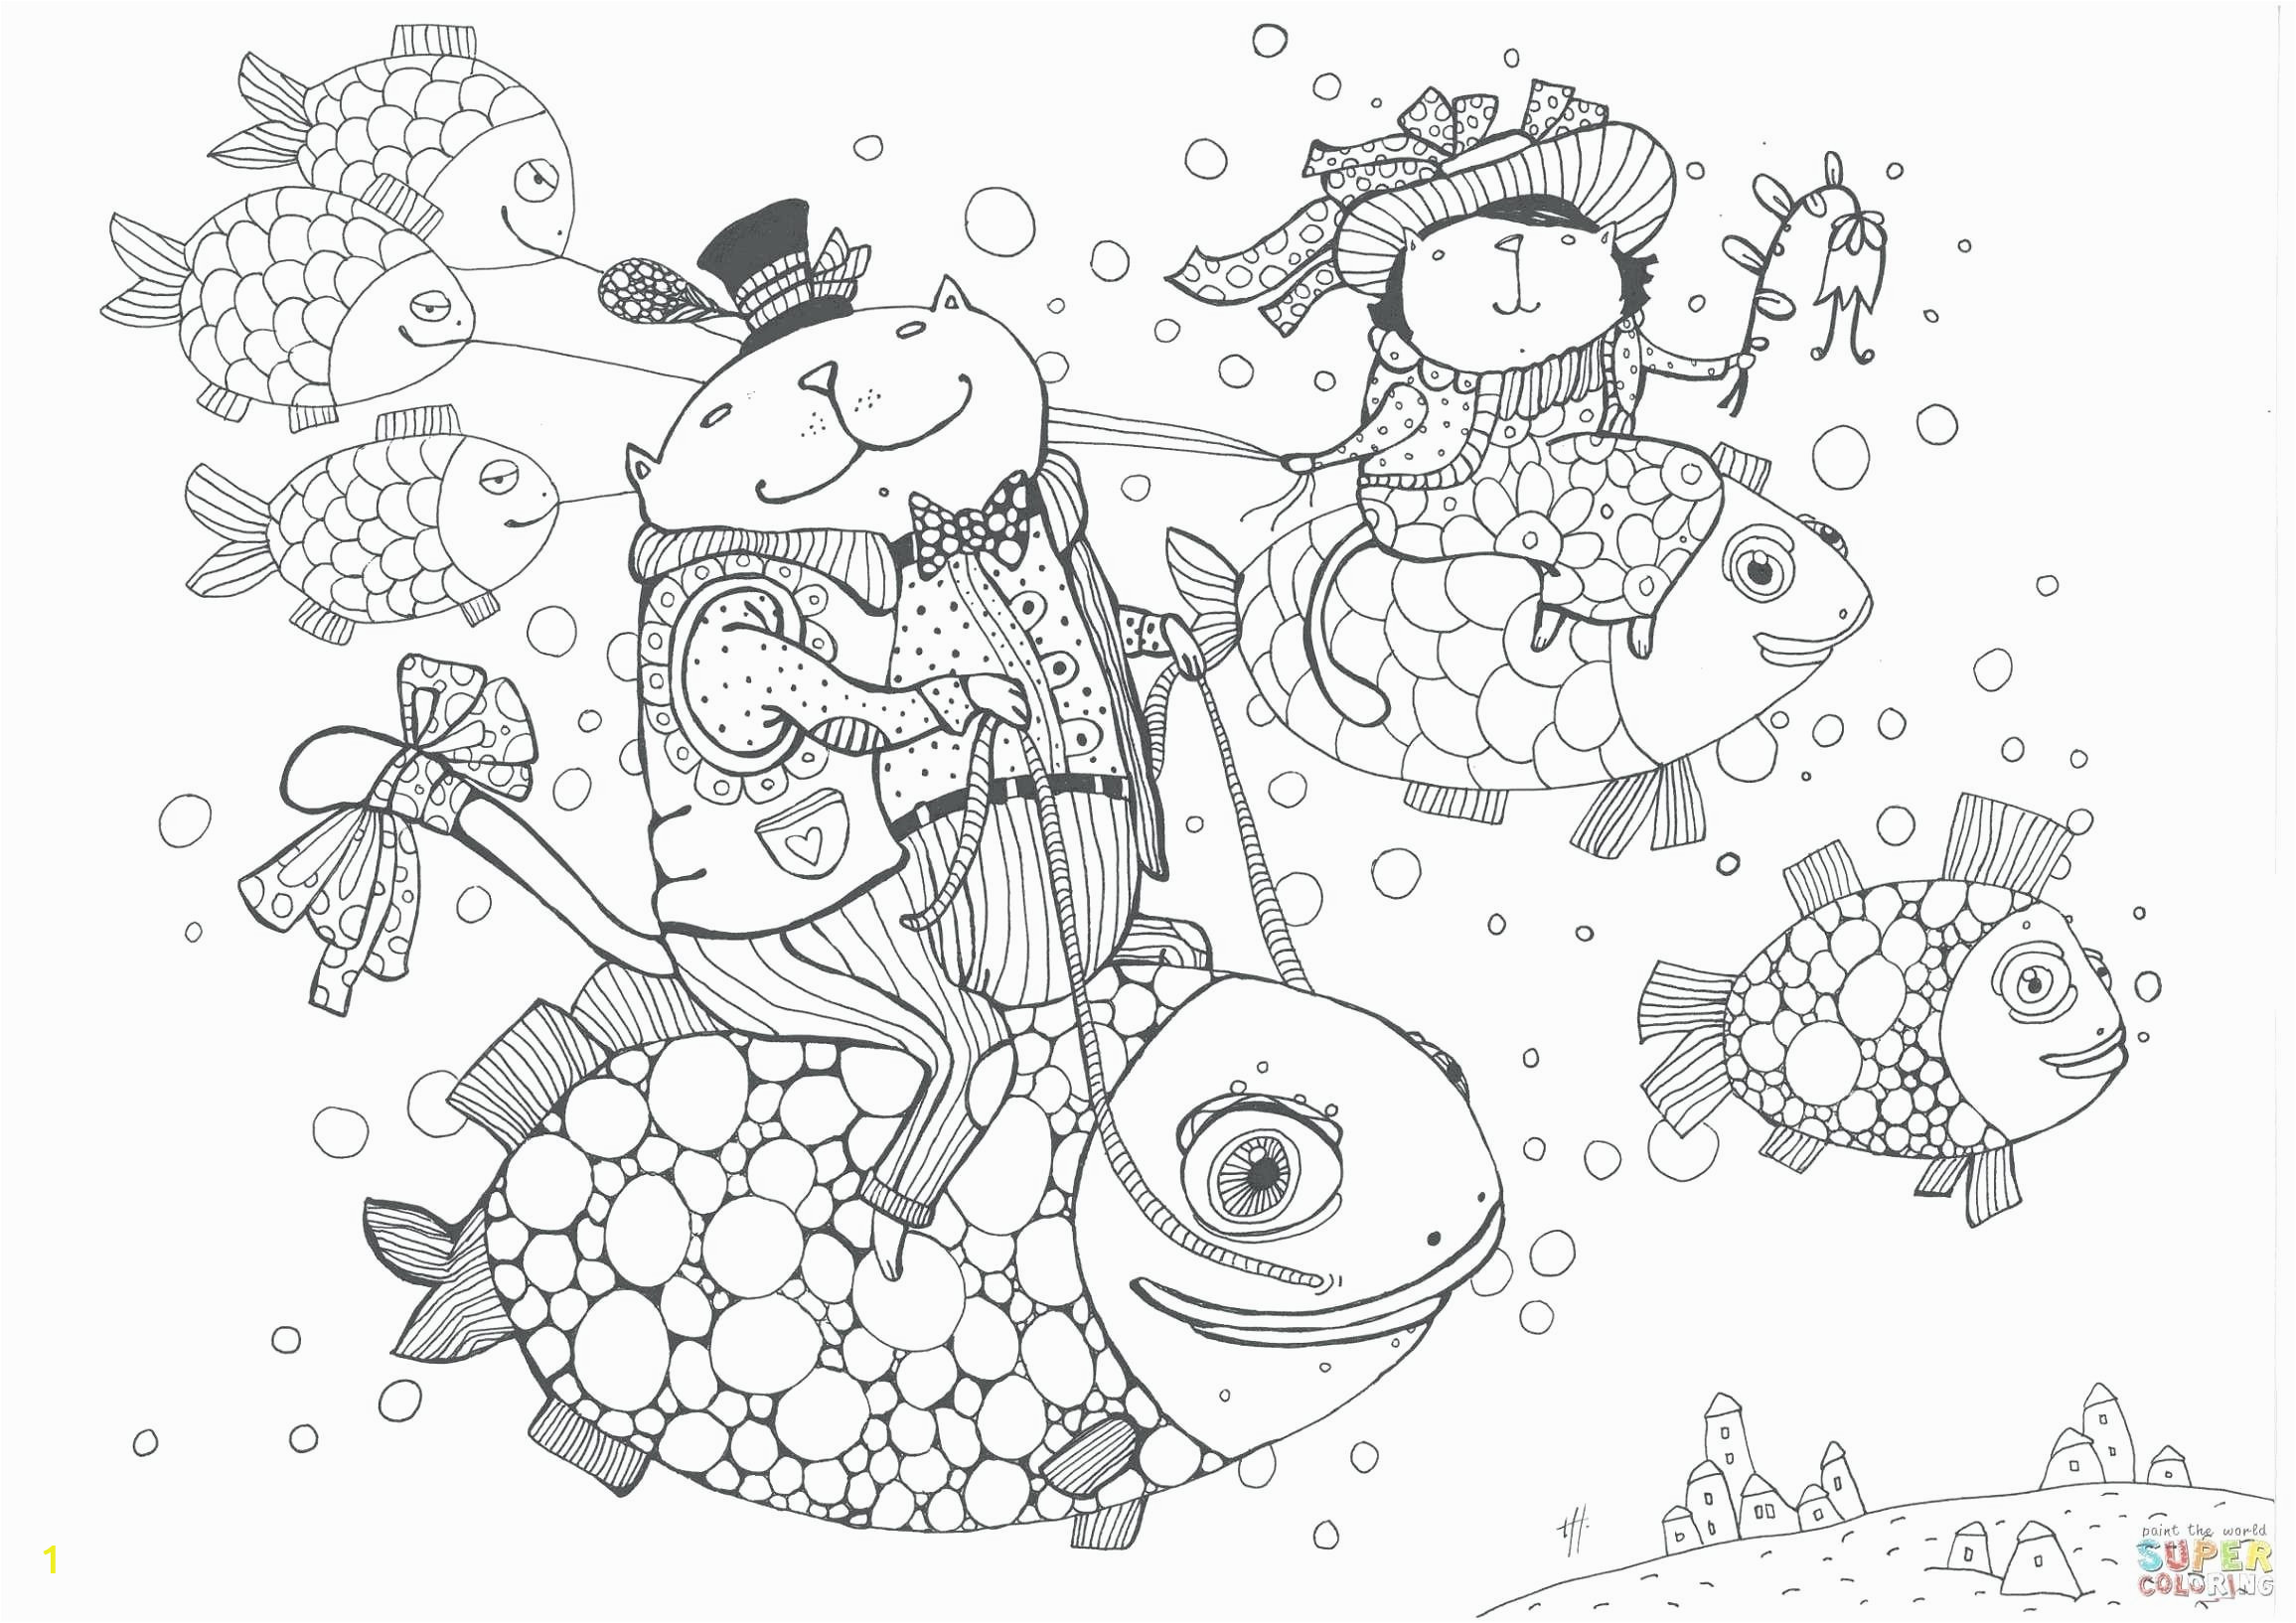 printable number coloring sheets activities best coloring free color by number christmas printables of number coloring sheets activities